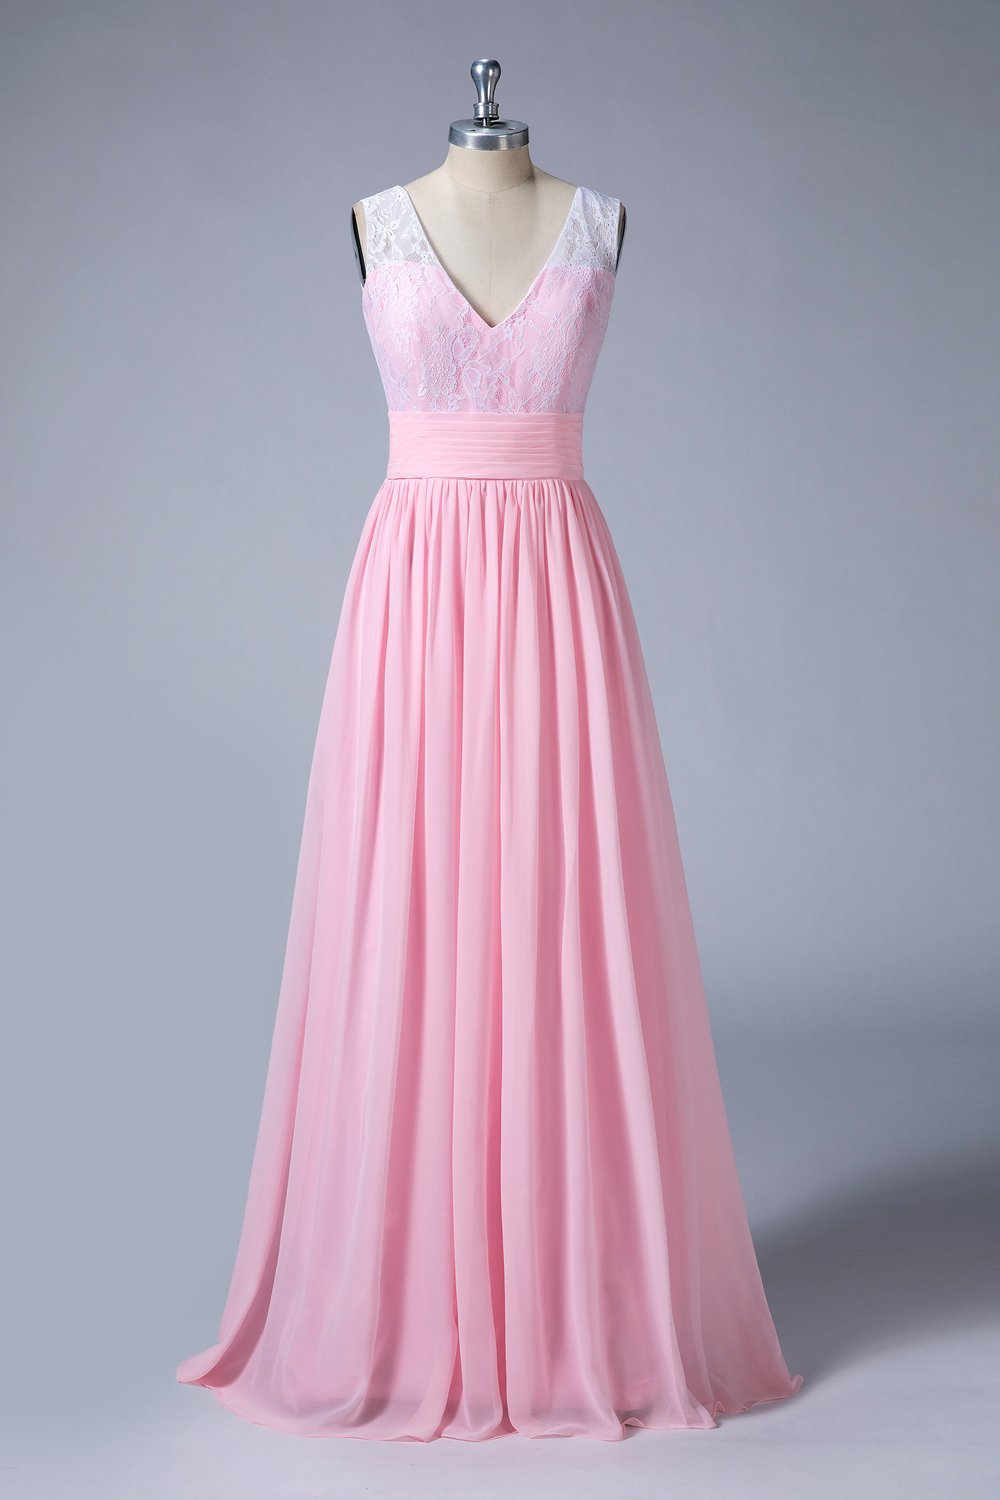 V-Neck Sleeveless A-Line Long Bridesmaid Dresses